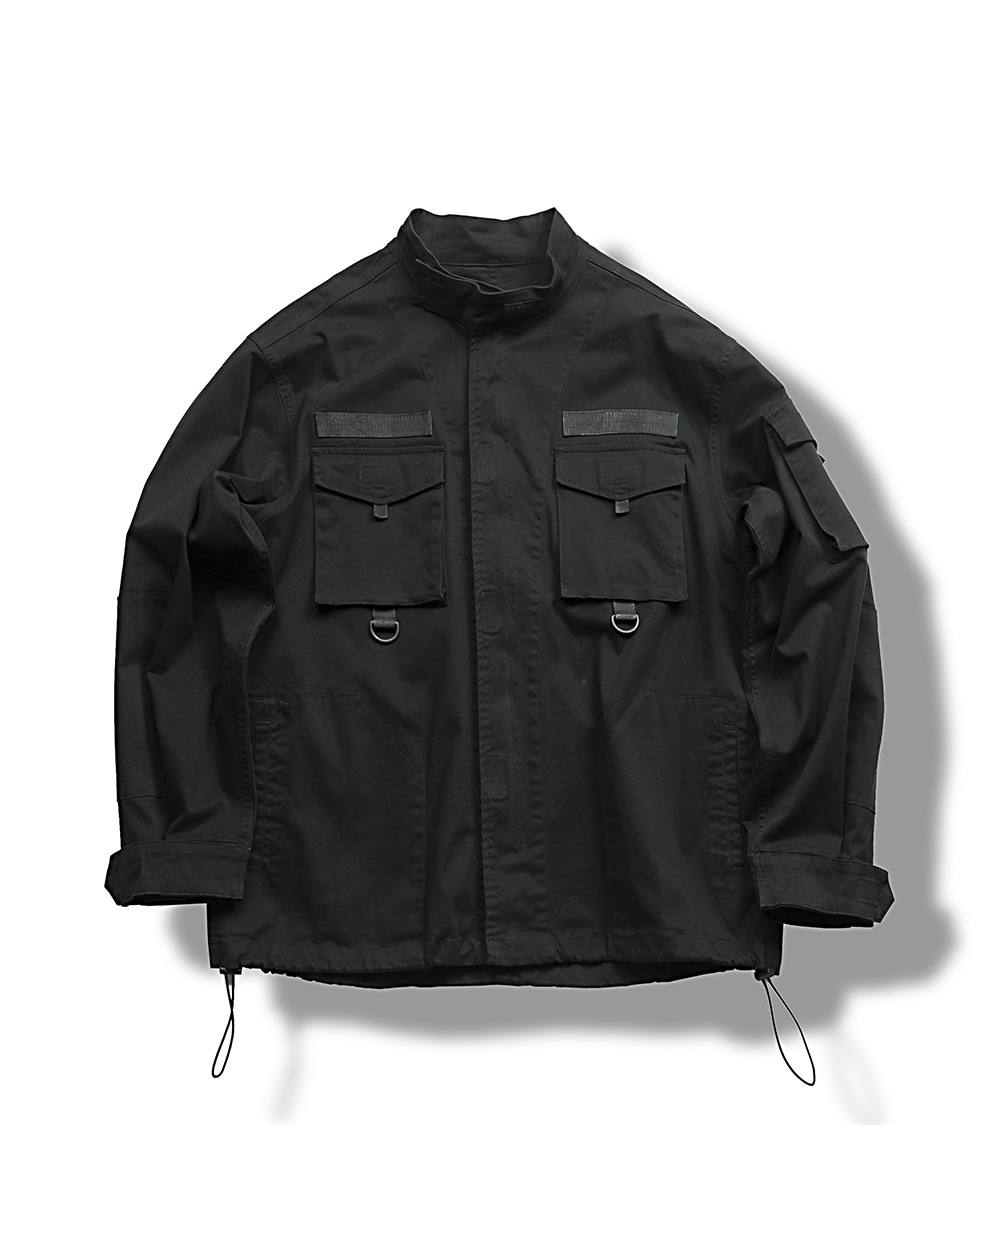 (VLADIMIR) VDMR FIELD JACKET BLACK